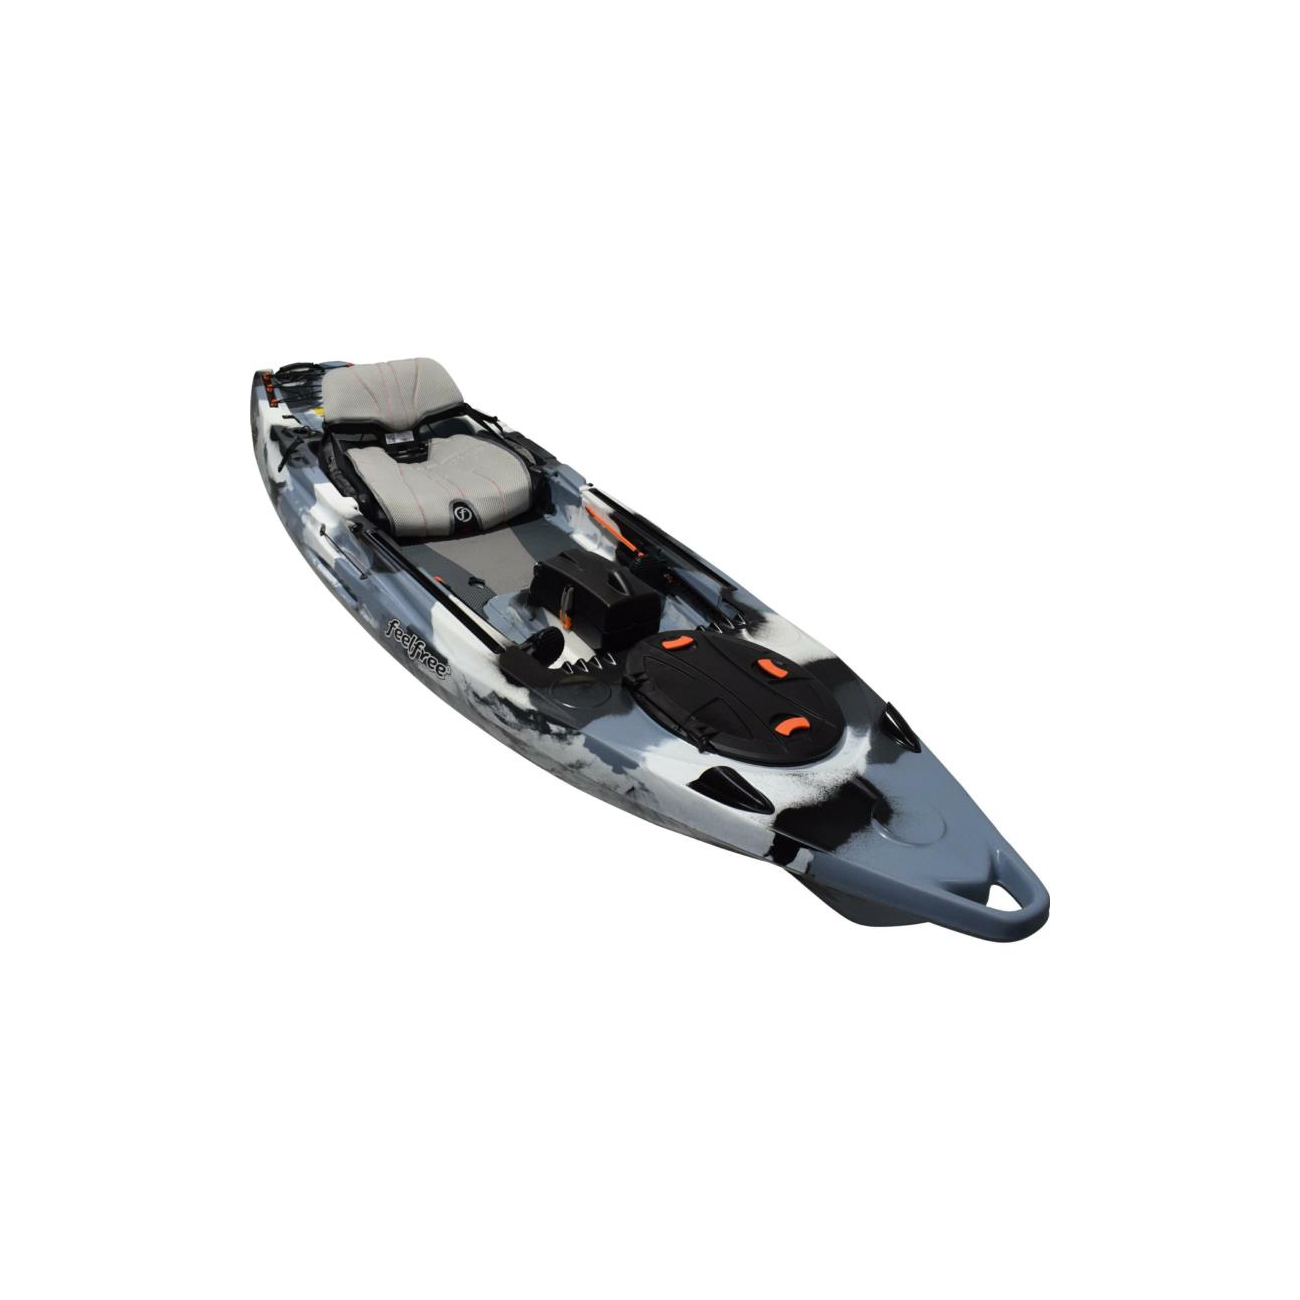 https://feelfreekayak.eu/508-small_default/lure-115-v2-winter-camo.jpg